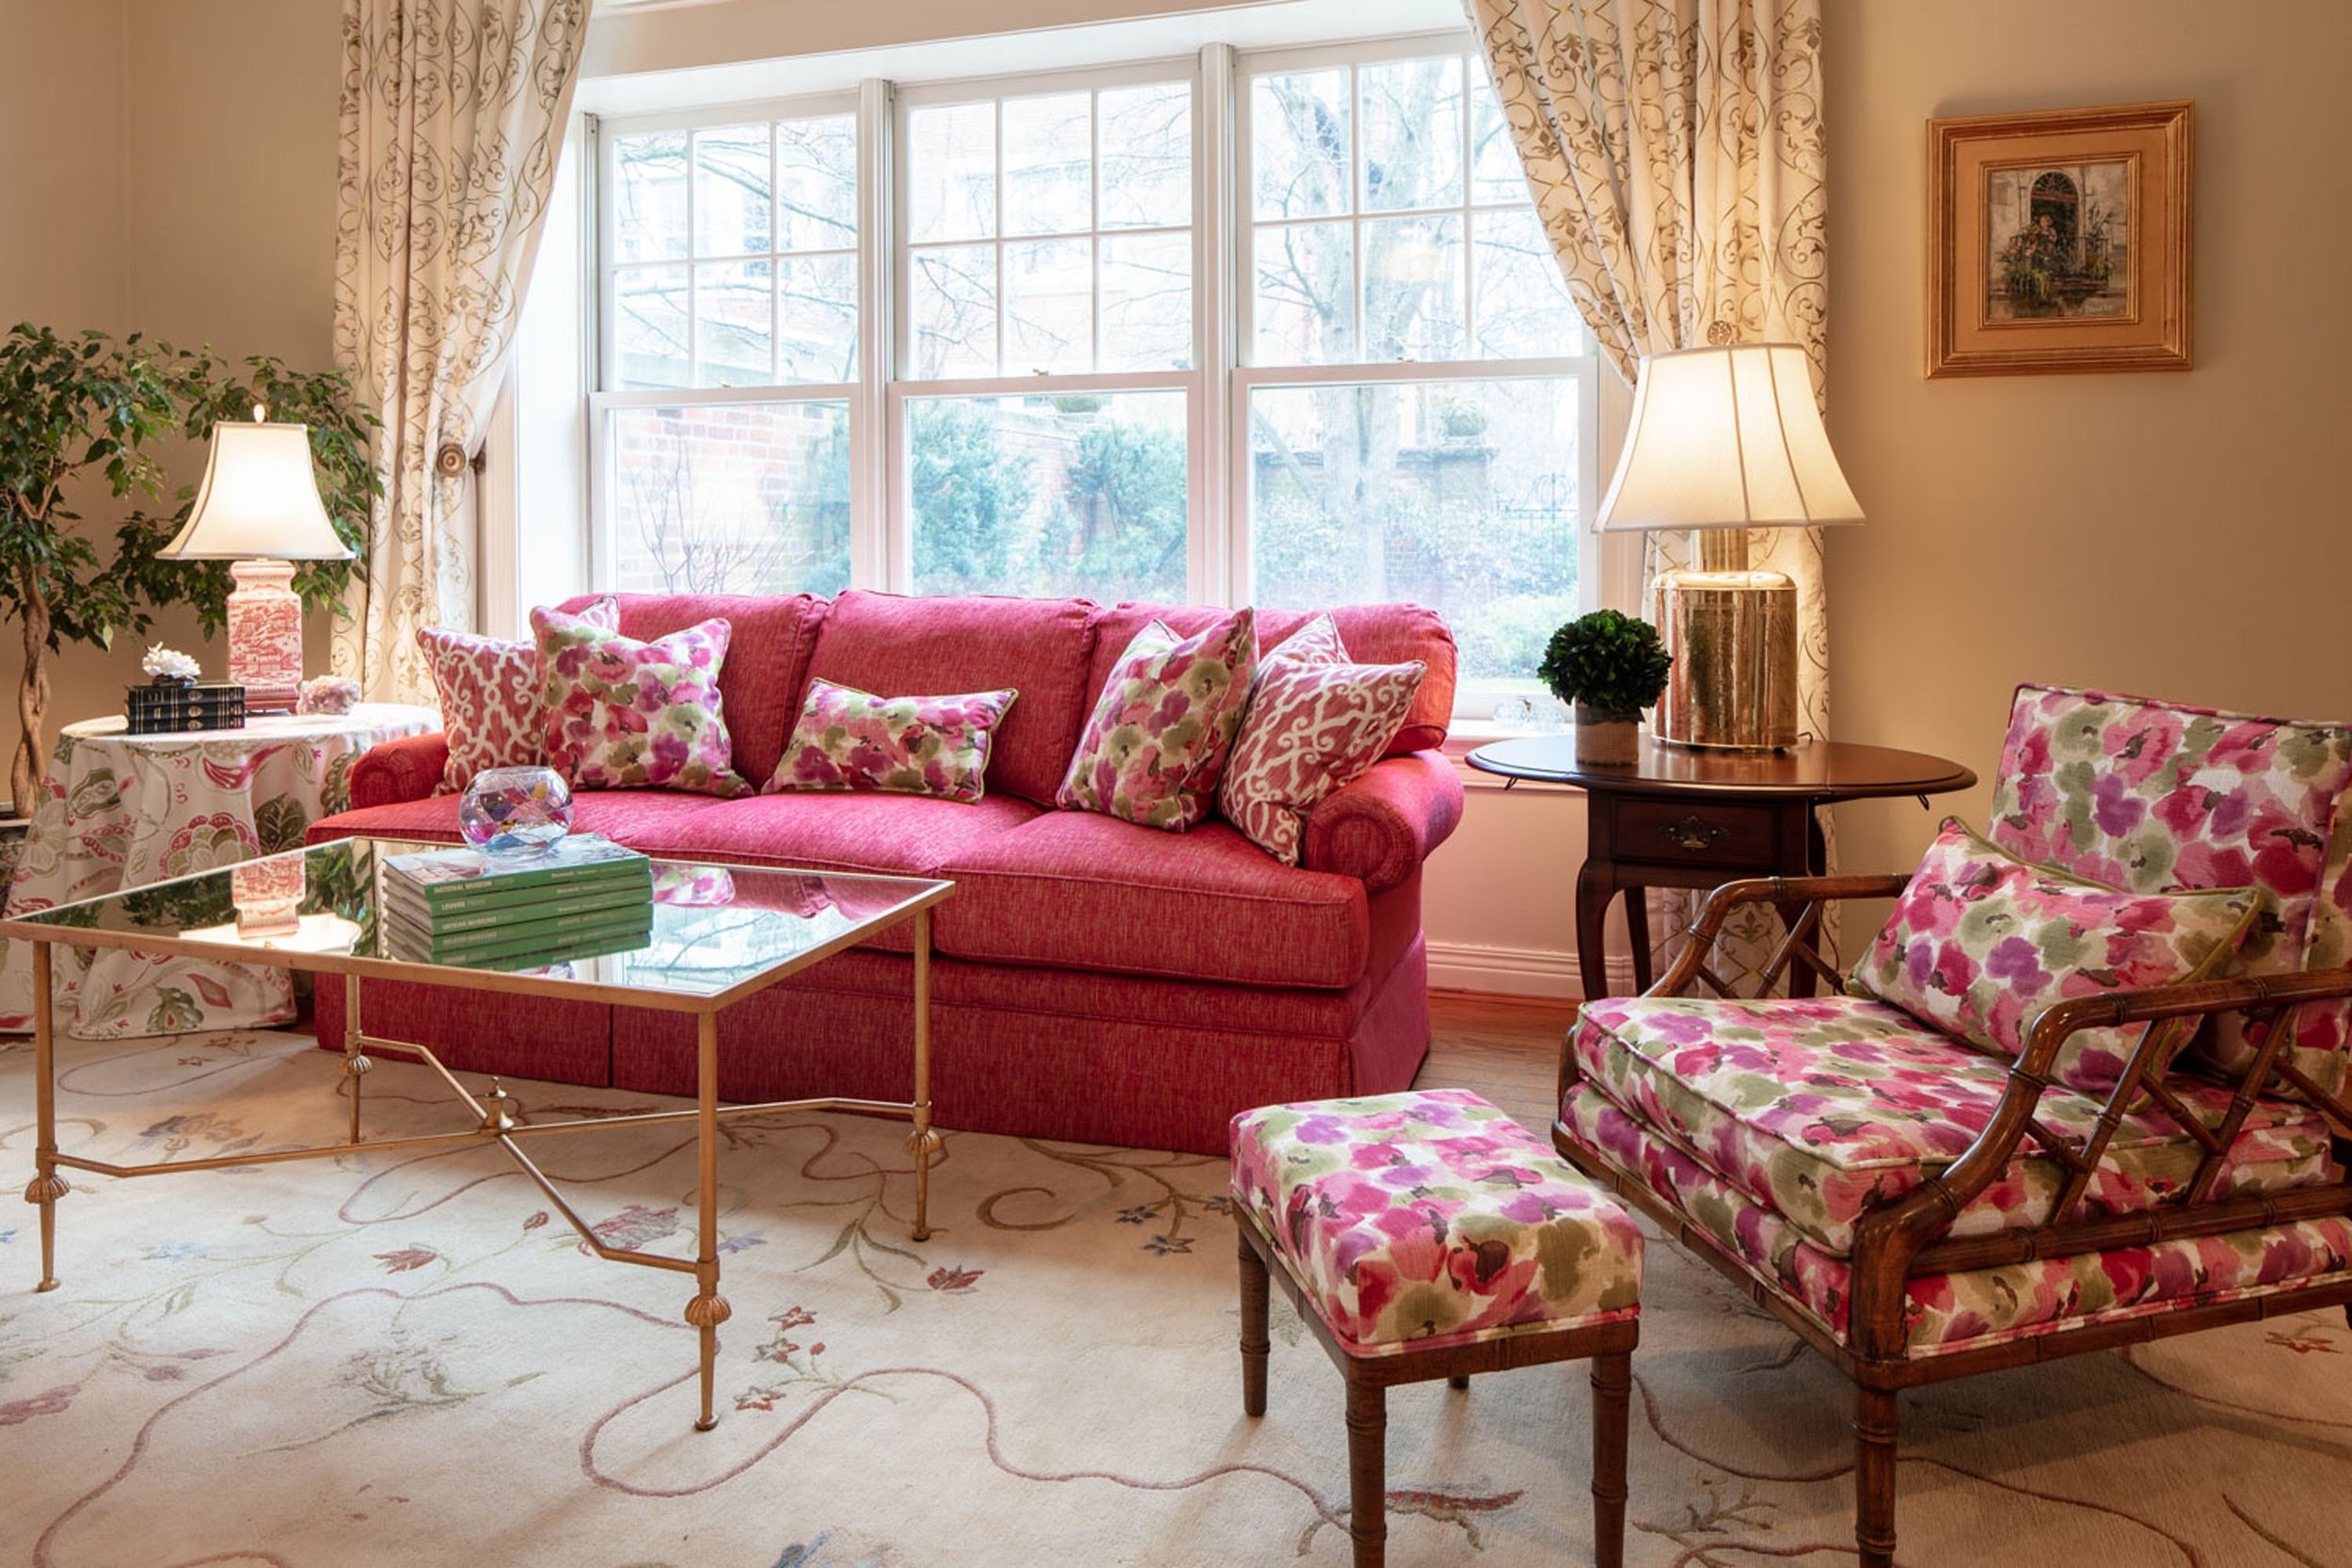 Modern living room with pink sofa, floral chair and center table